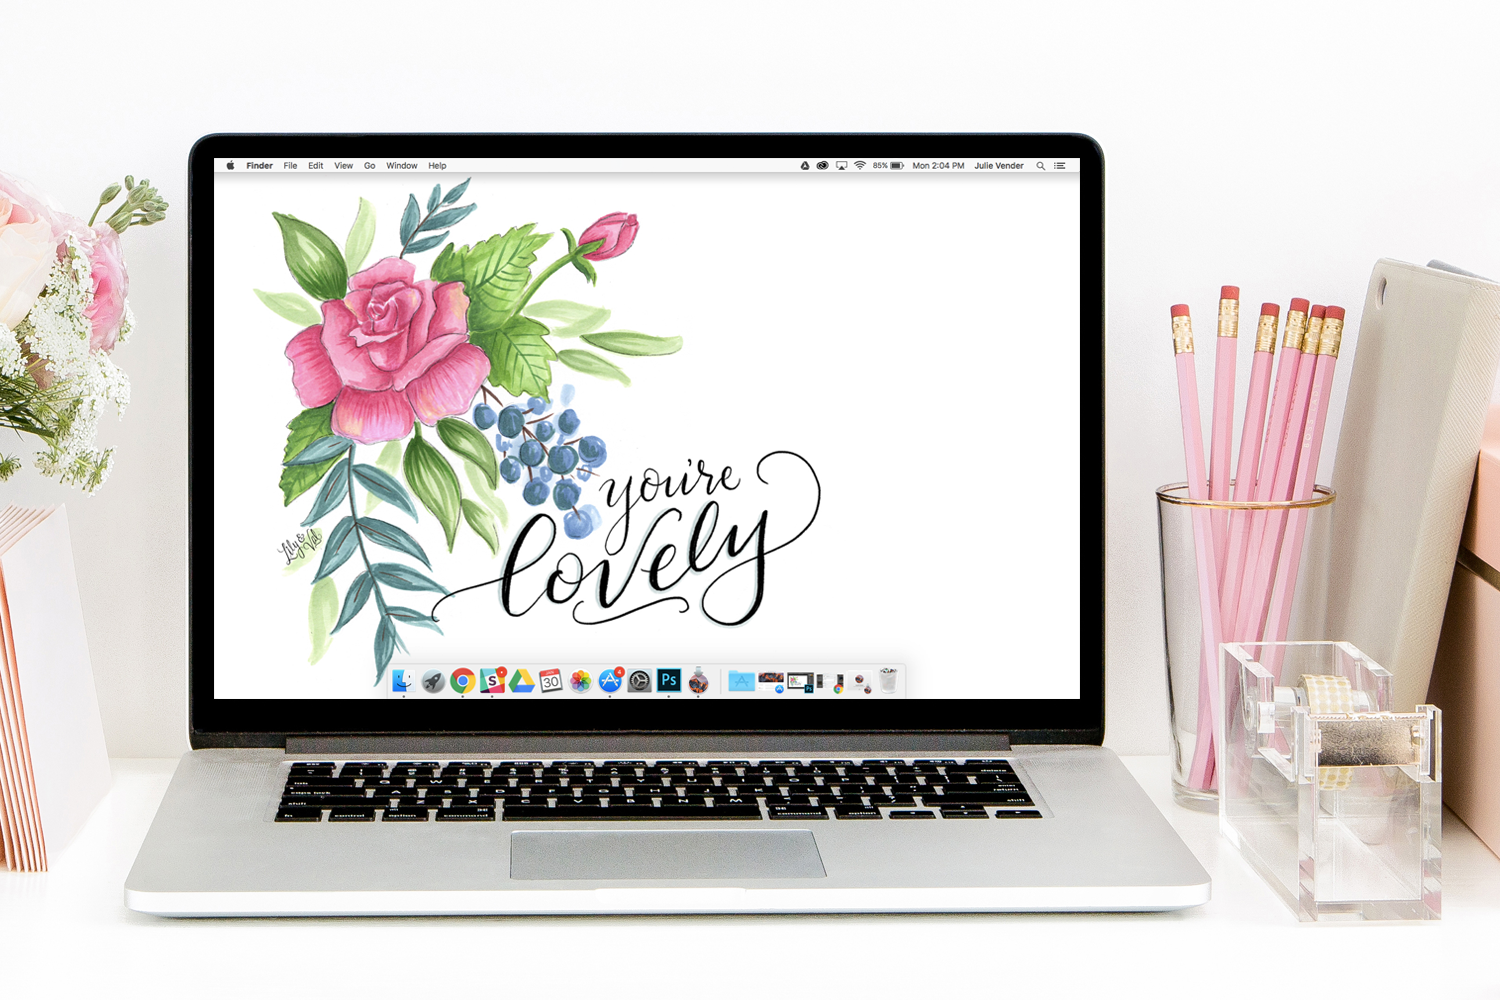 Lily & Val hand lettered and hand drawn free desktop download for February - everyone is love this Valentine's Day